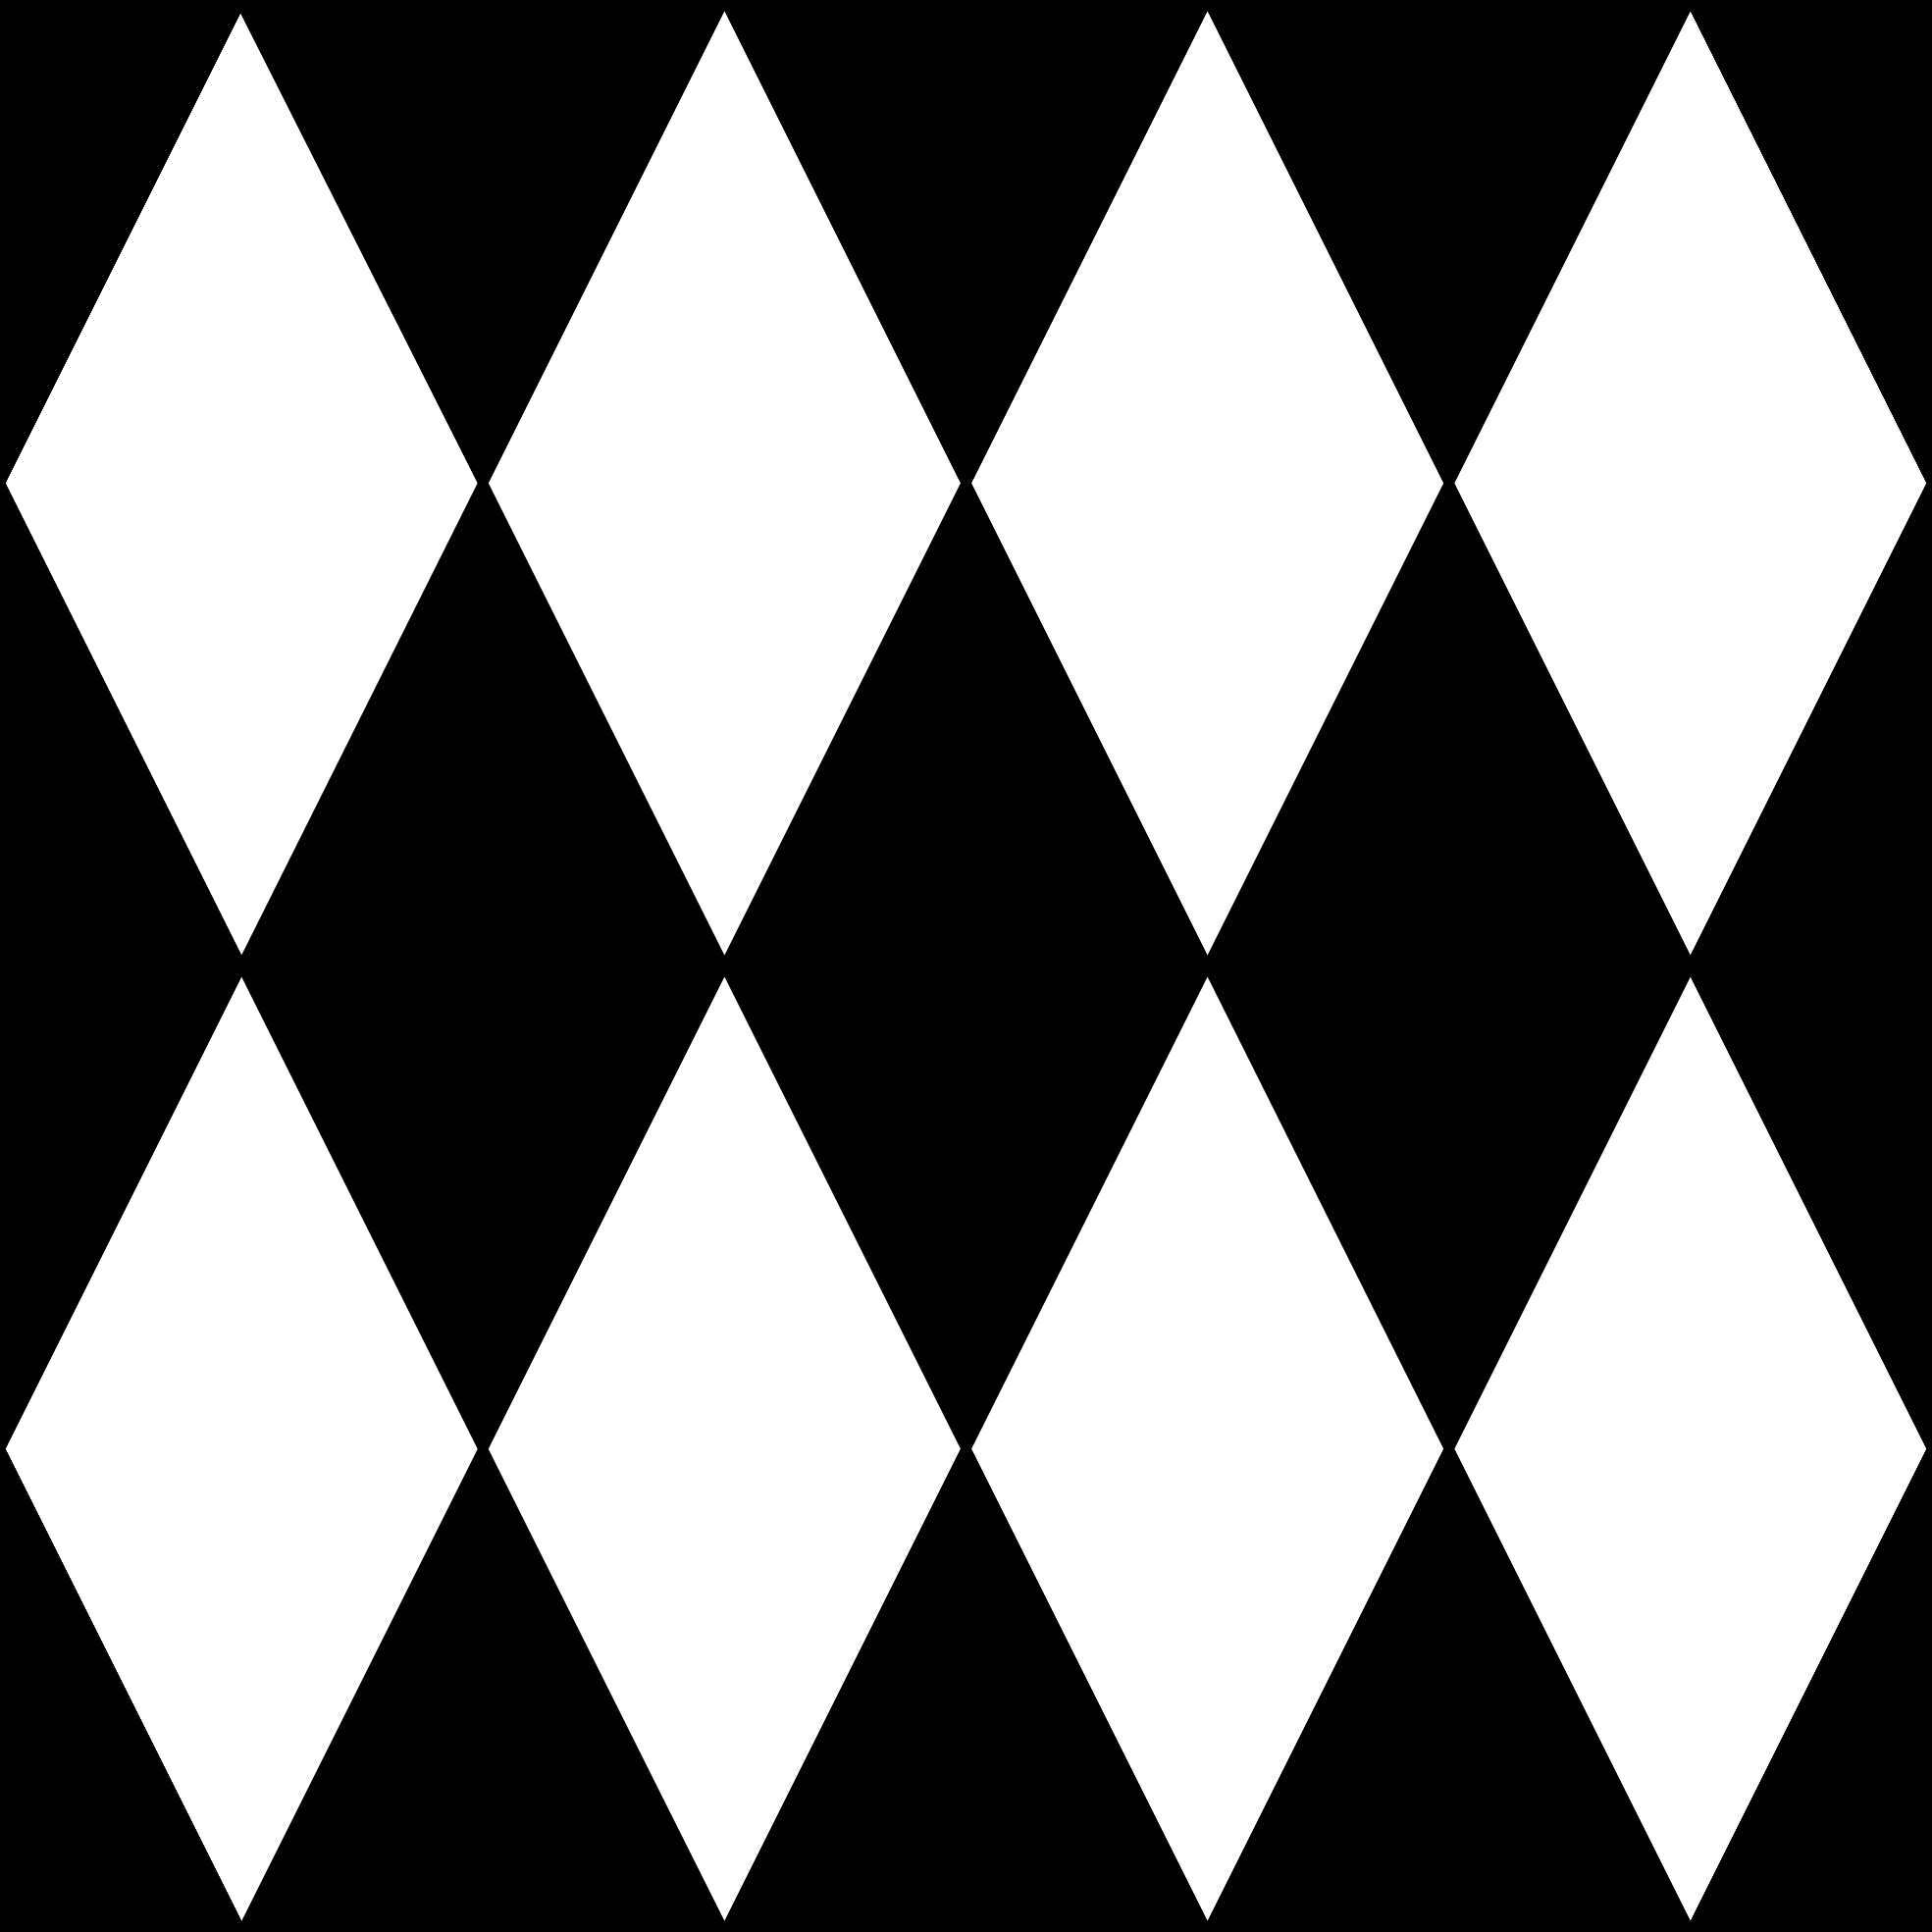 Pattern clipart harlequin. Black and white b